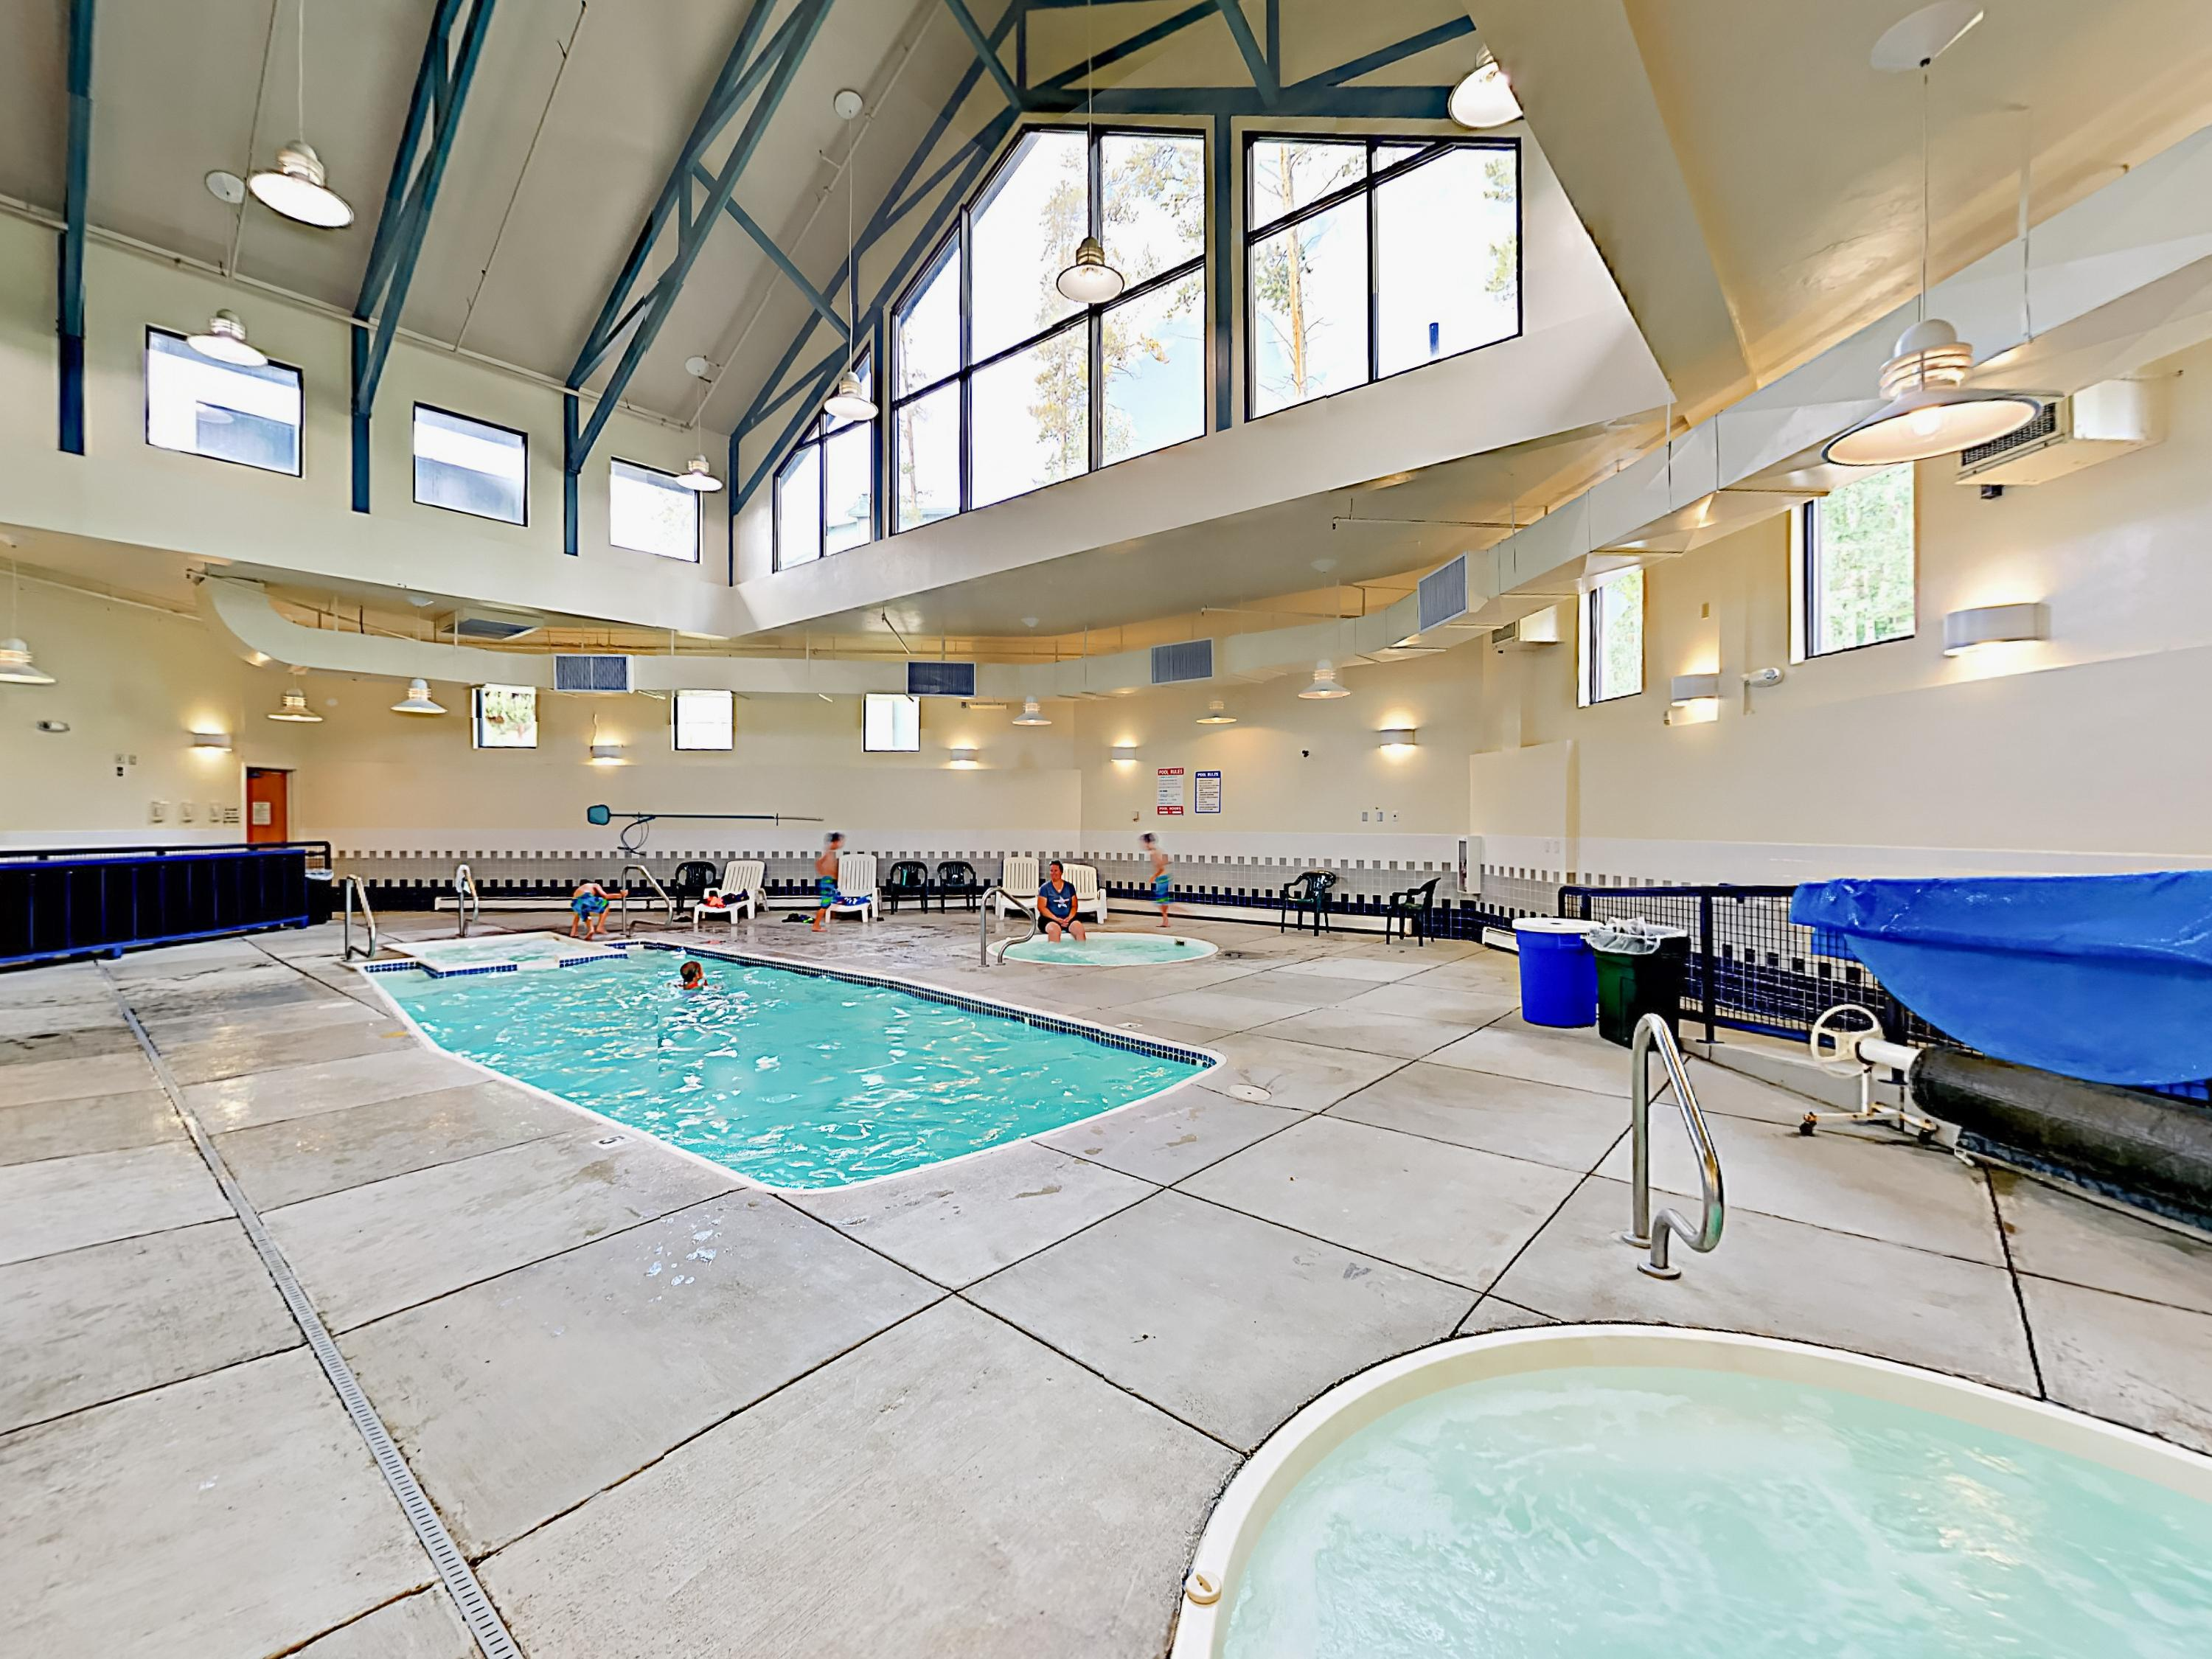 Head to the clubhouse to swim in the heated, year-round pool and soak in 2 bubbling hot tubs.